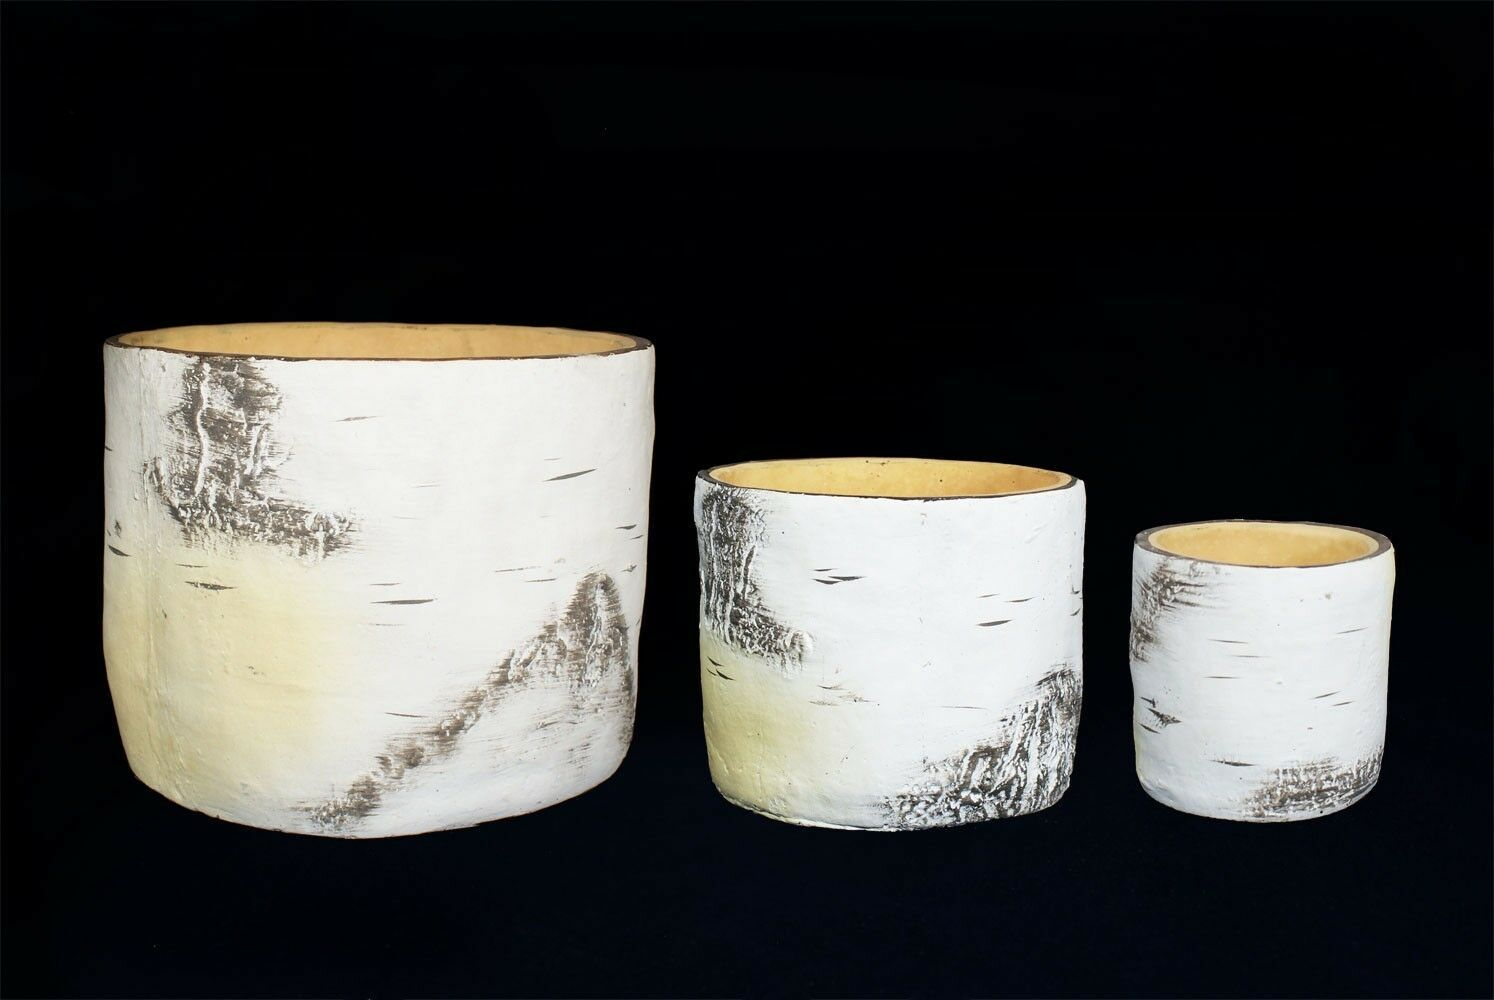 Primary image for Cactus Plant Bonsai Tree Pot and Planter Birch Tree Set of 3 pieces